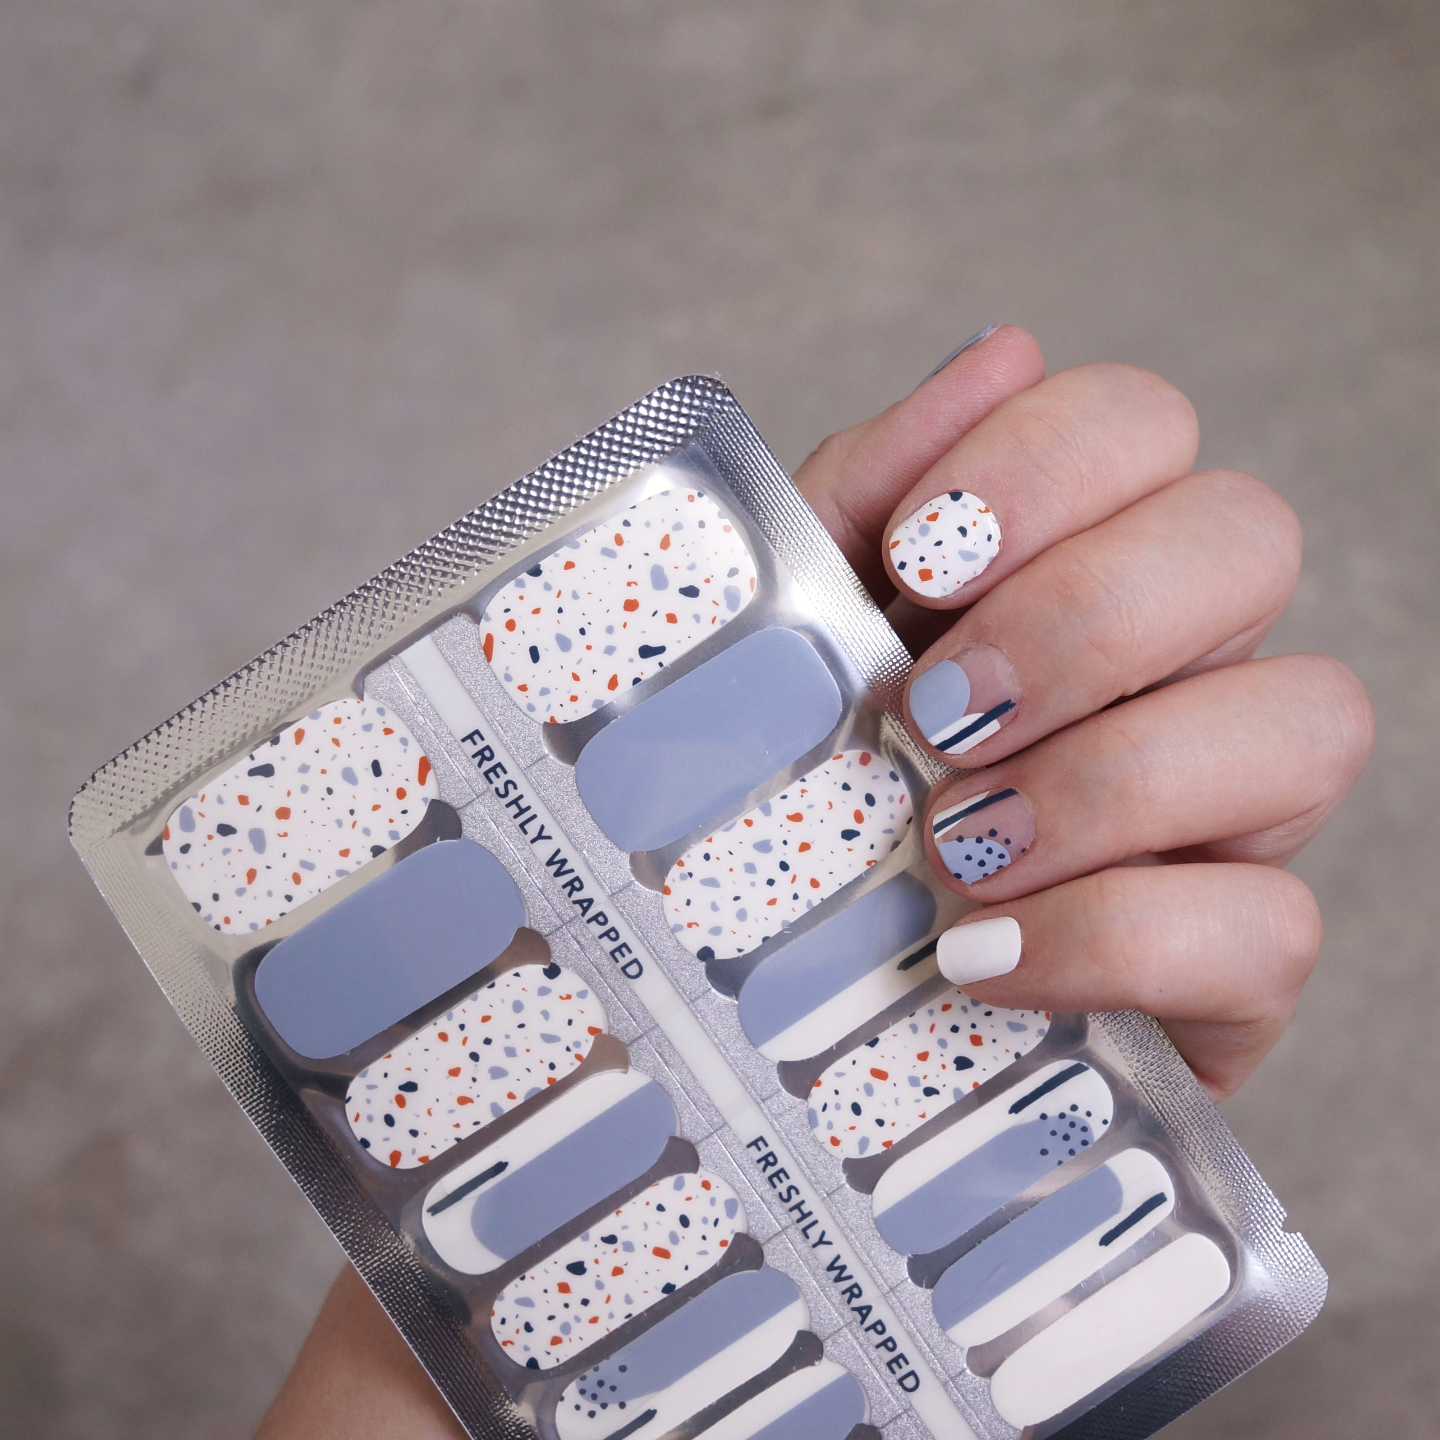 A female left hand holding on to a nail wrap in clear plastic packaging. The nail wrap comes in five different design for each nail. The nail for the thumb is in baby blue, while the index finger has a white base with terrazzo pattern in orange, baby blue and dark blue. The middle finger has a transparent base with two blob shapes in light blue and white emerging from the tip of the nail. A dark blue vertical line cuts through the white blob shape. The ring finger has a clear base with two blob shapes in light blue and white. A dark blue vertical line cuts through the white blob and dark blue dots are found on the light blue blob. The baby finger is in white. The hand also has the nail wrap on her finger nail.